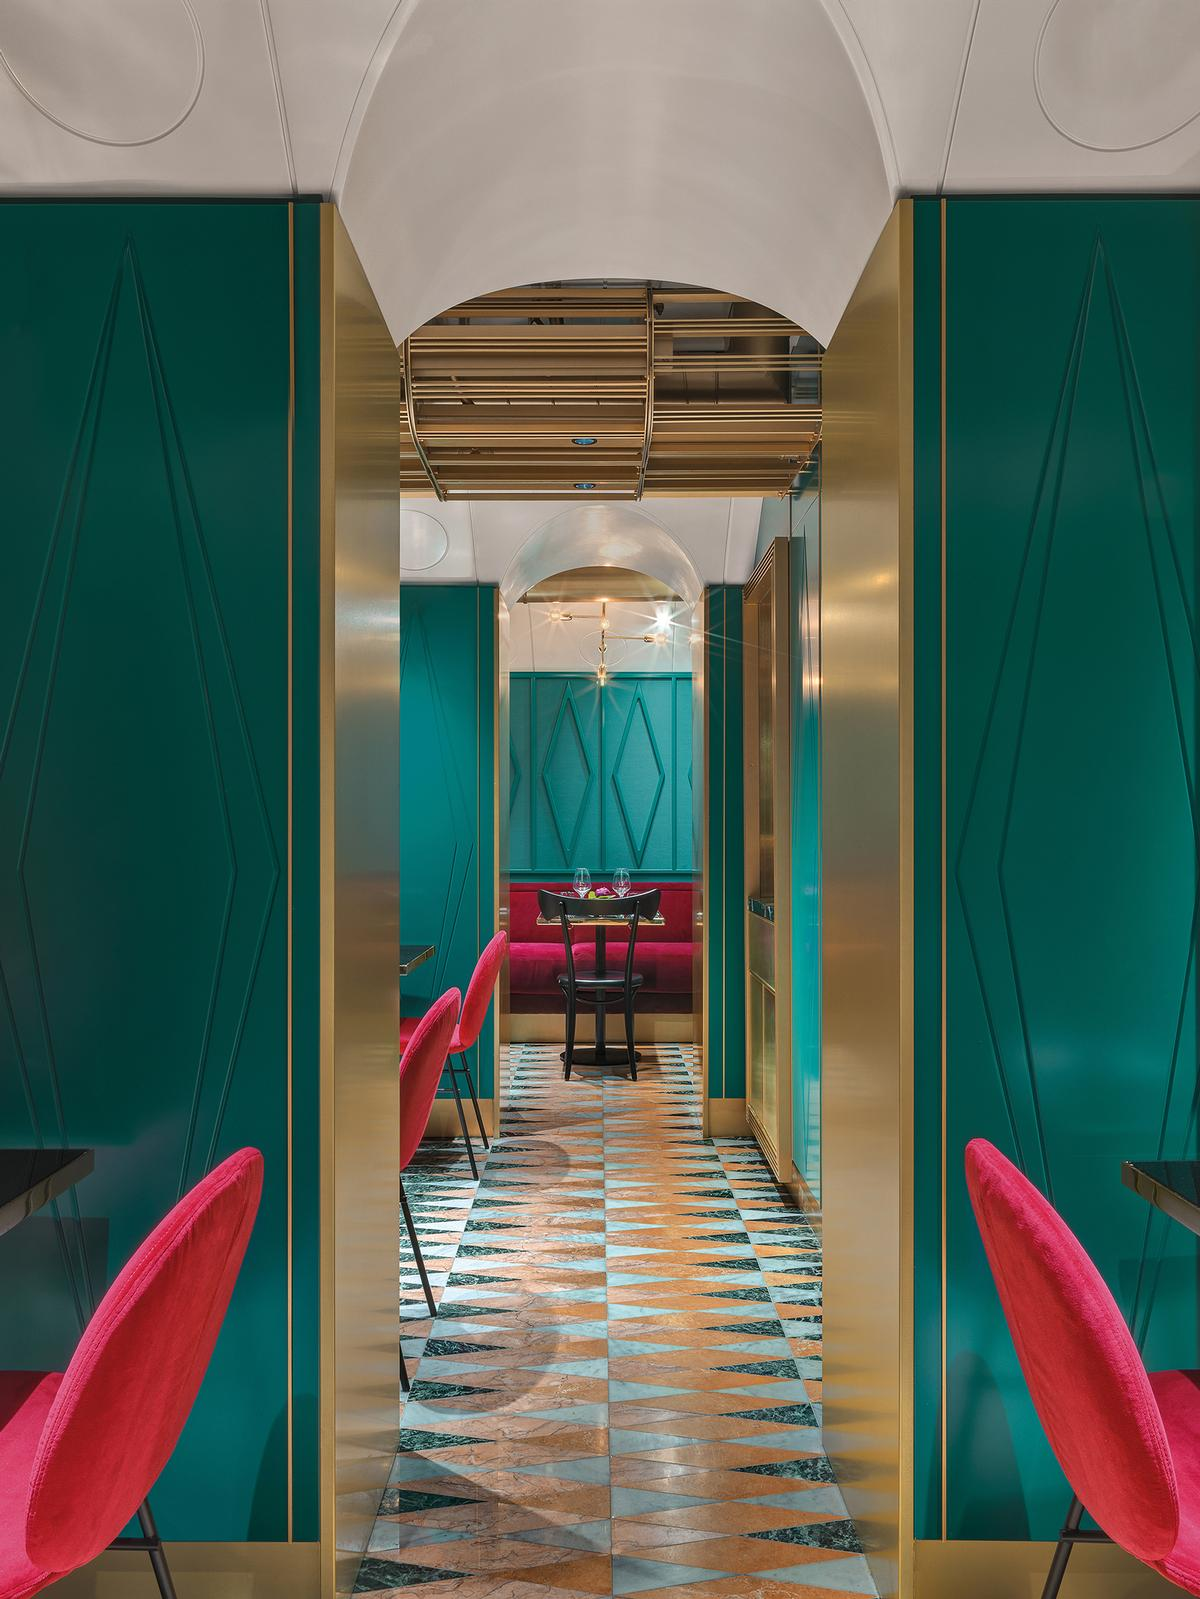 Emerald, gold and burgundy are used for different elements downstairs / Matteo Piazza